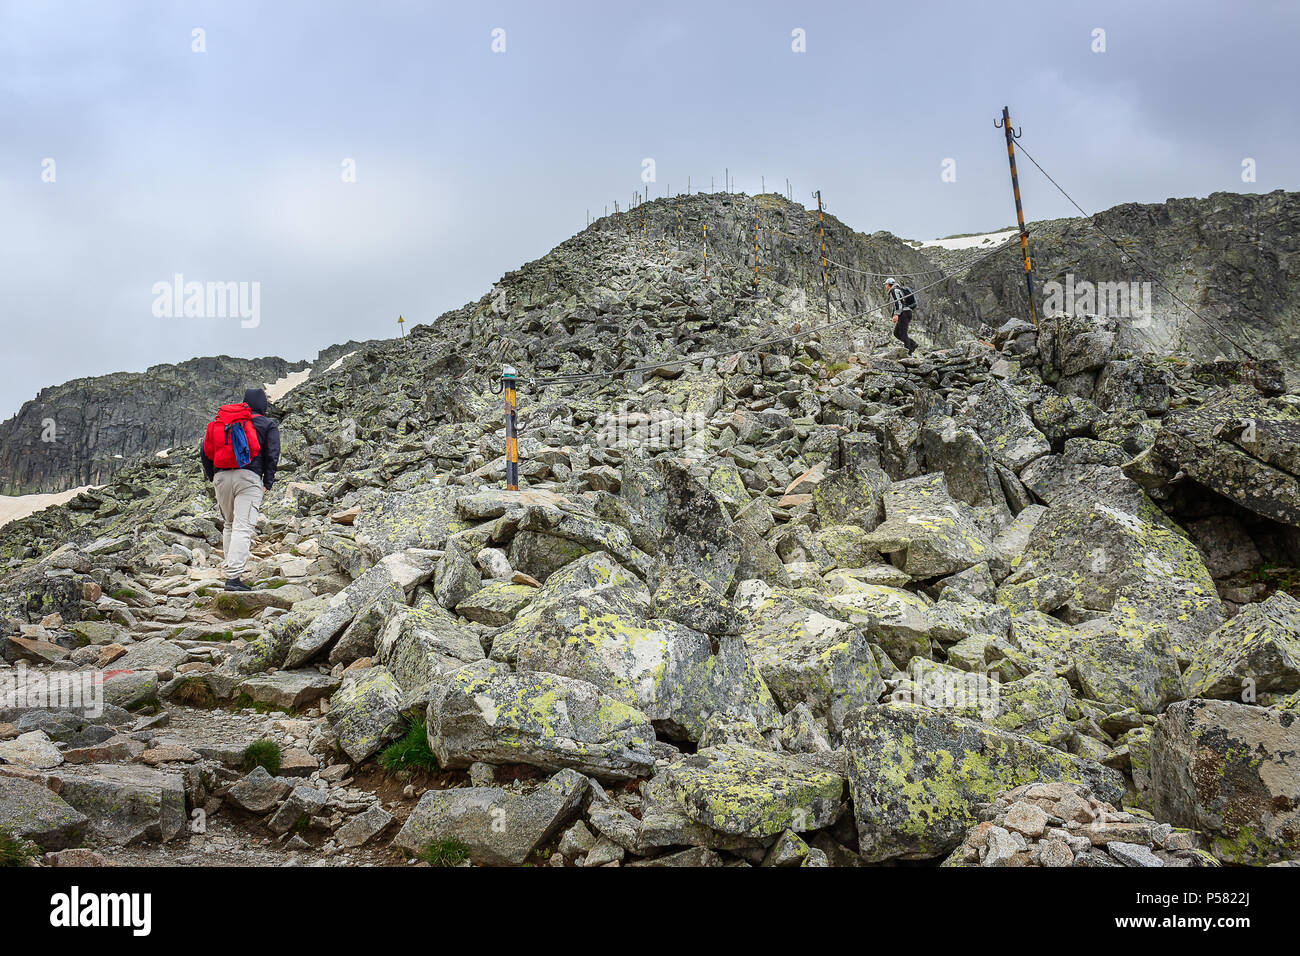 Mountain hikers climbing up the final, rocky reef in front of Musala summit on Rila mountain in Bulgaria - Stock Image